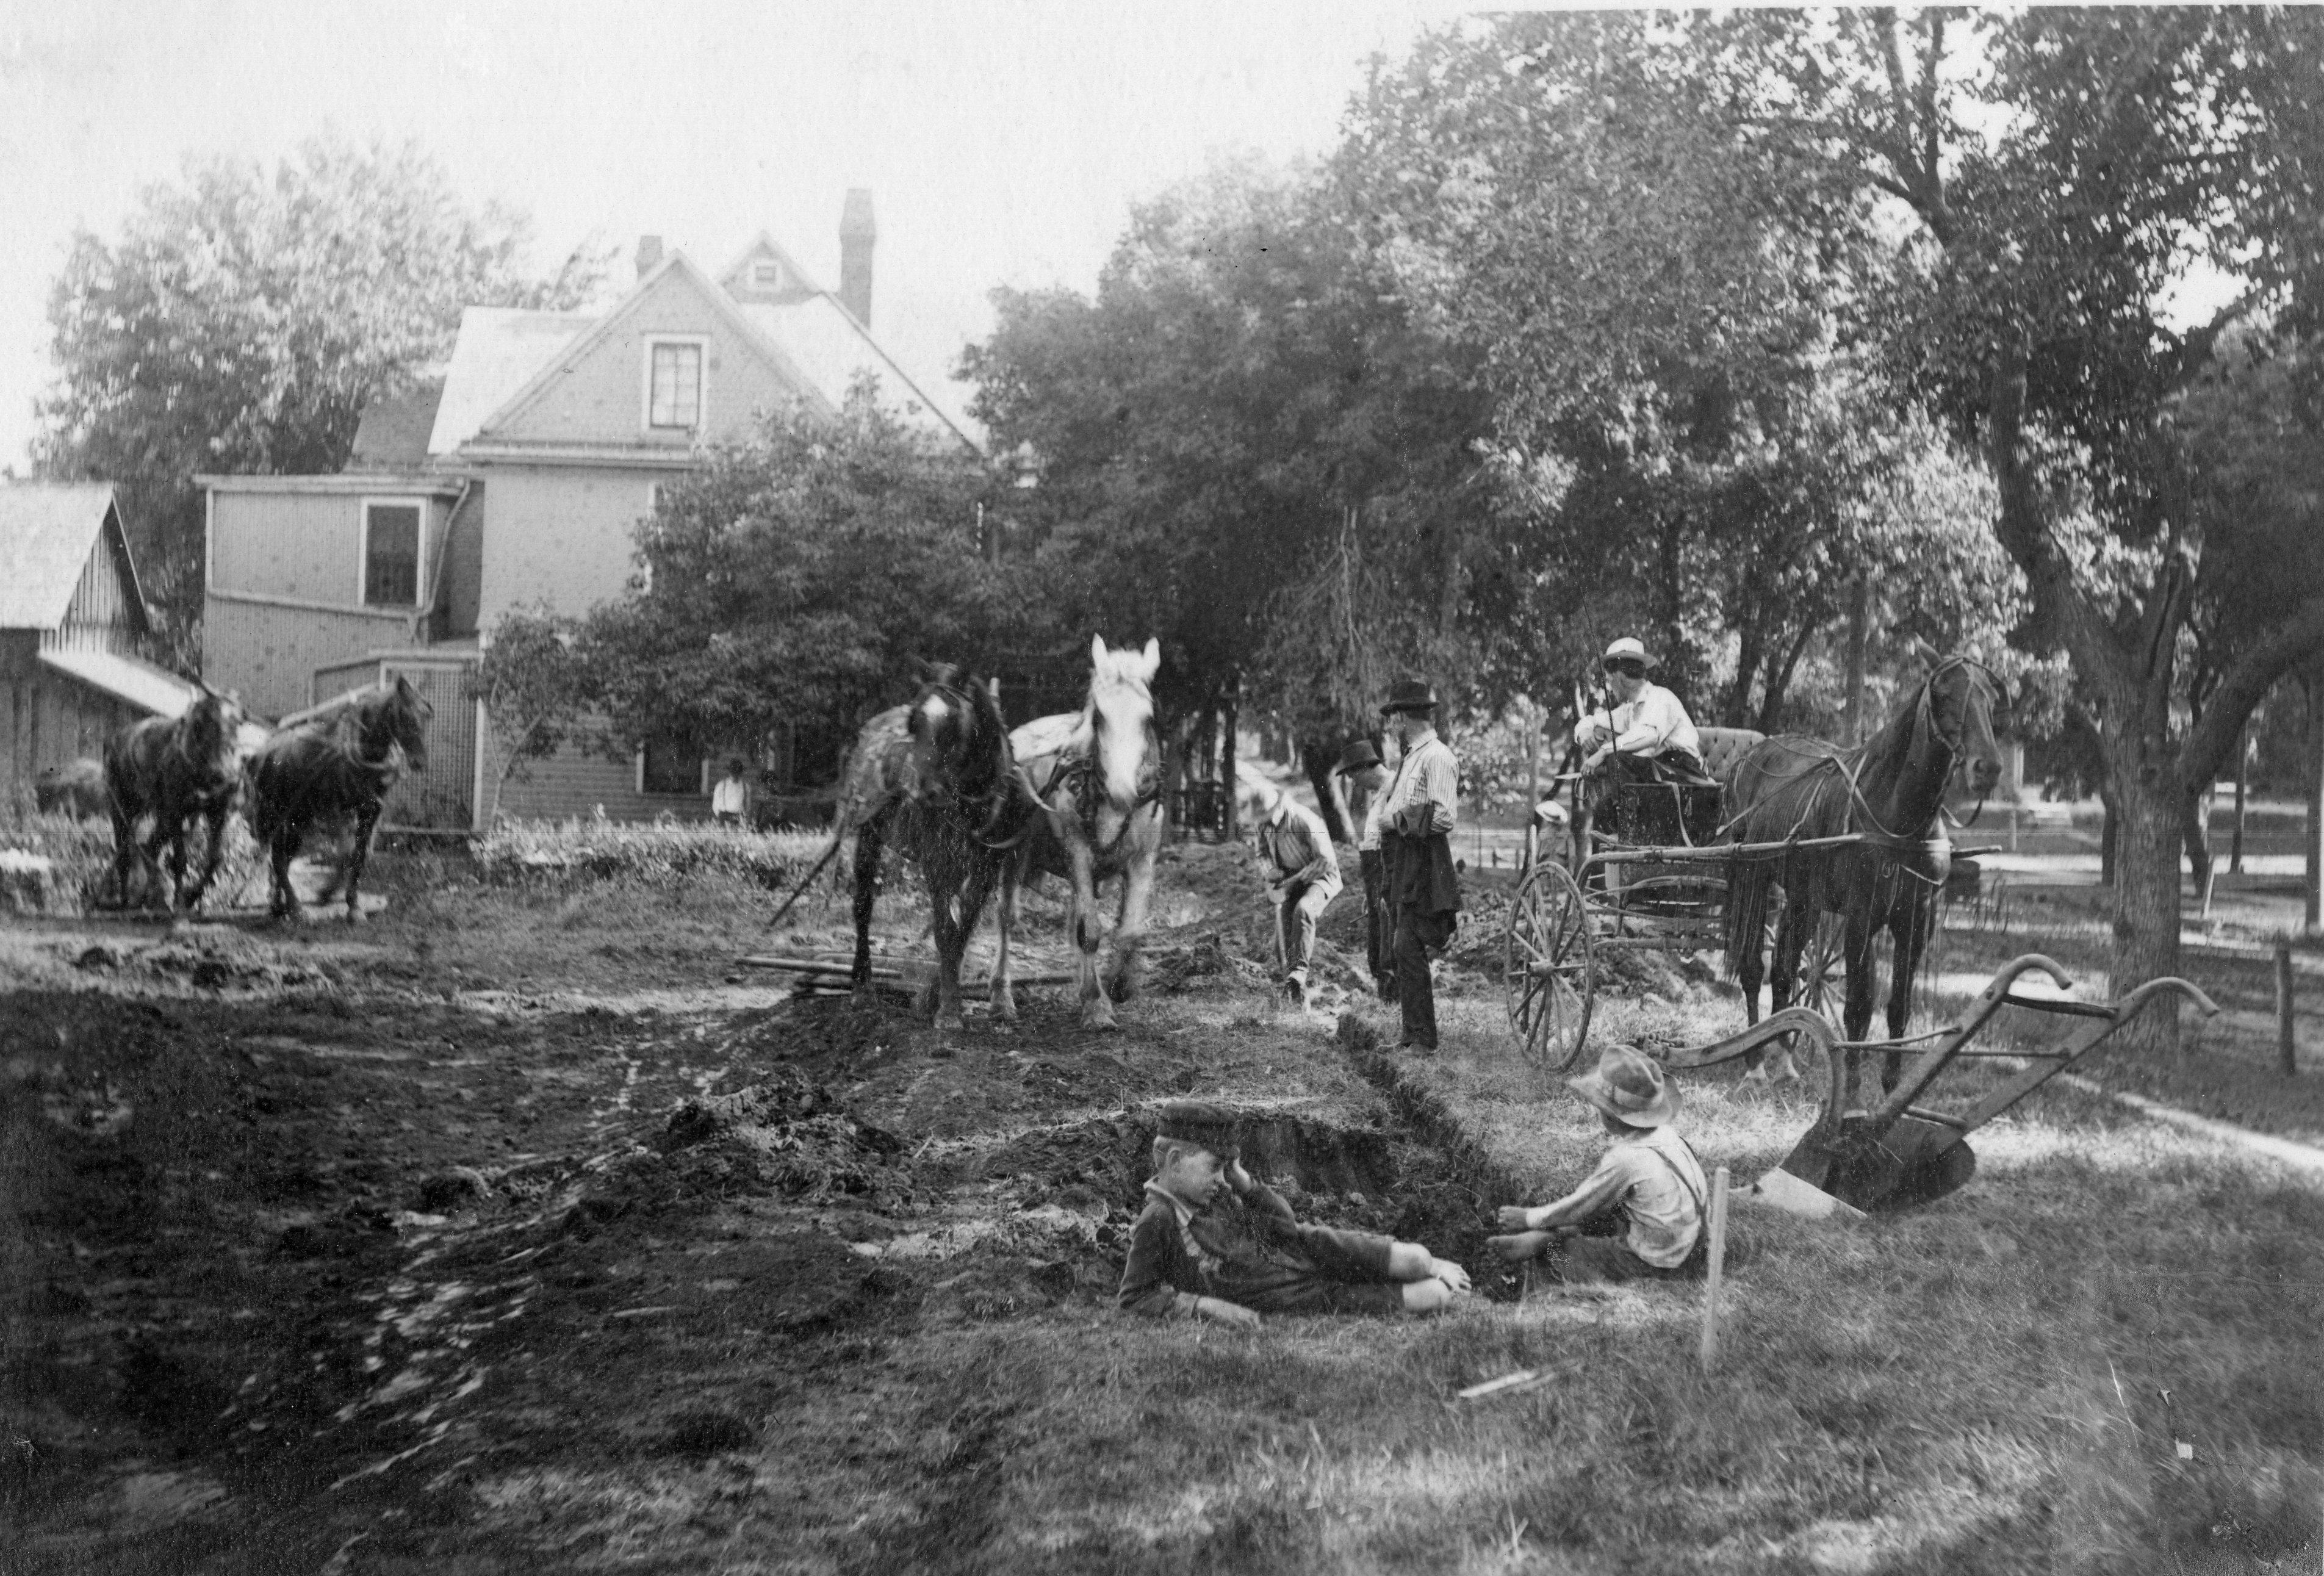 Horses and workers preparing the ground for construction